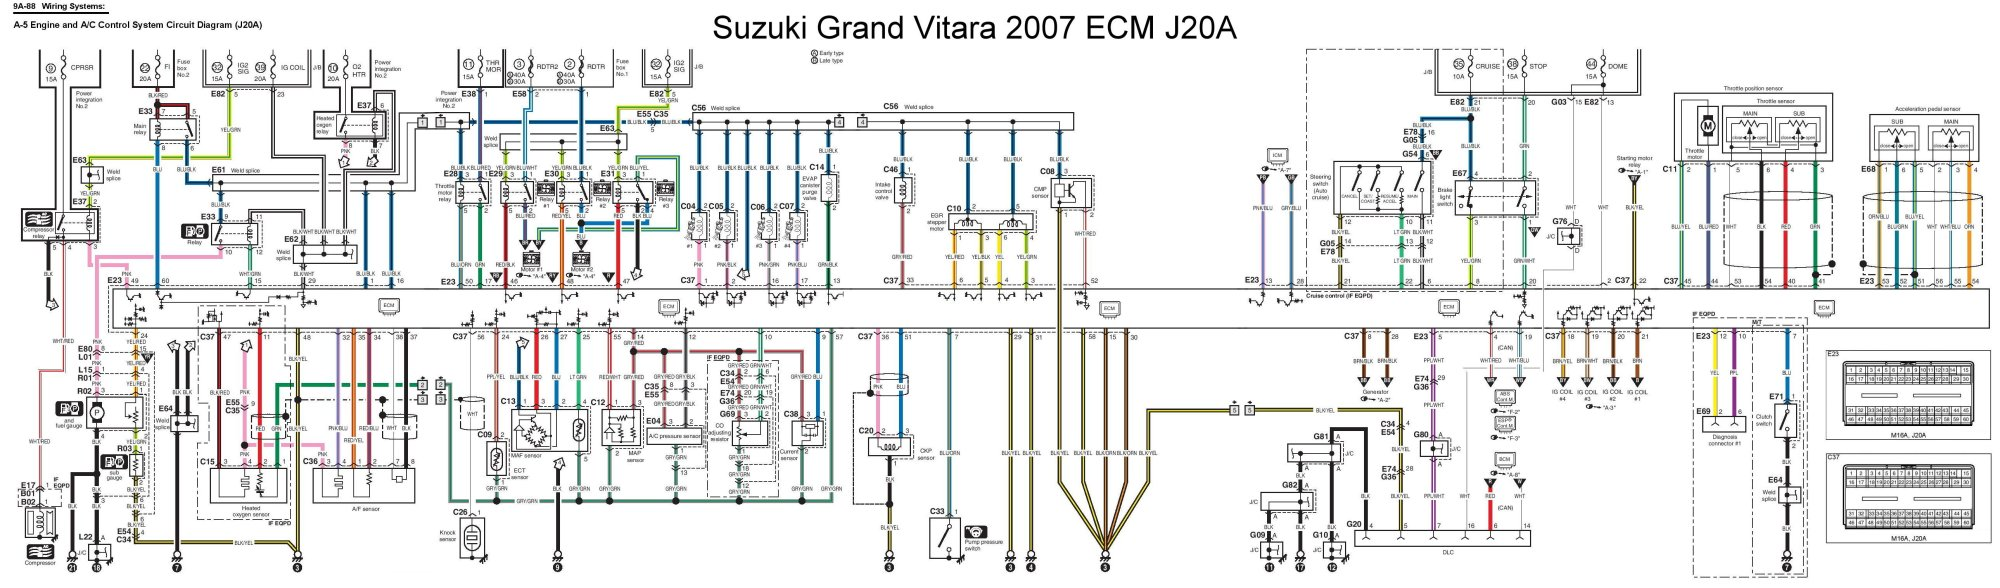 hight resolution of suzuki grand vitara diagram wiring diagram used 2003 suzuki vitara engine diagram